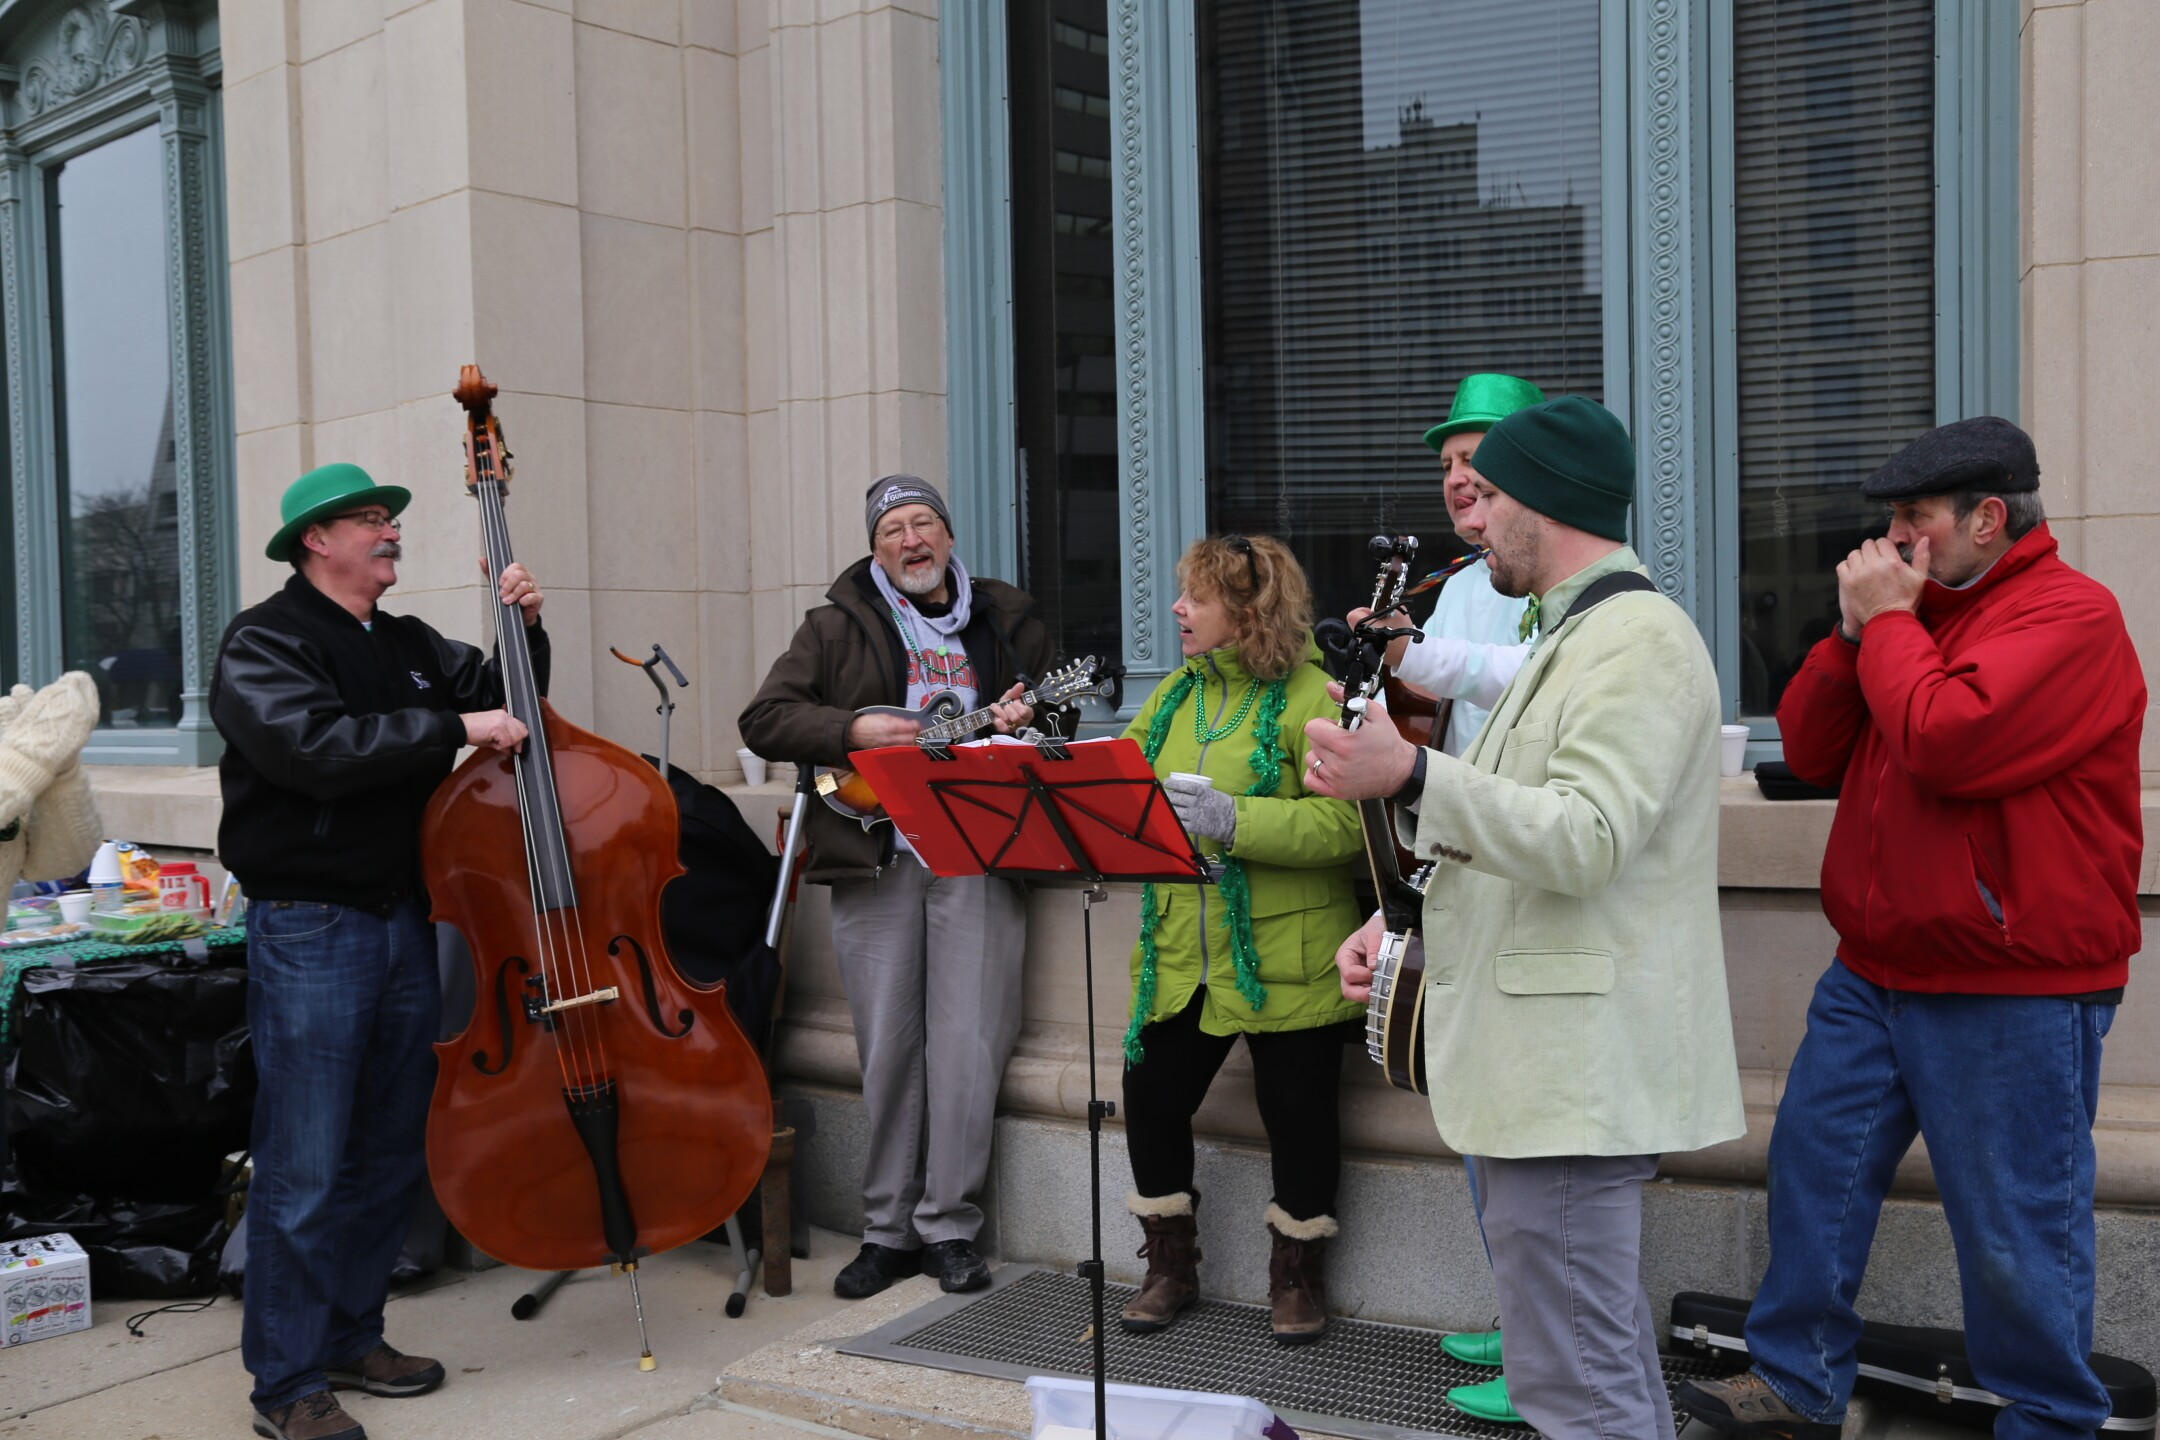 Milwaukee's St. Patrick's Day parade was windy, cold and full of Irish green!